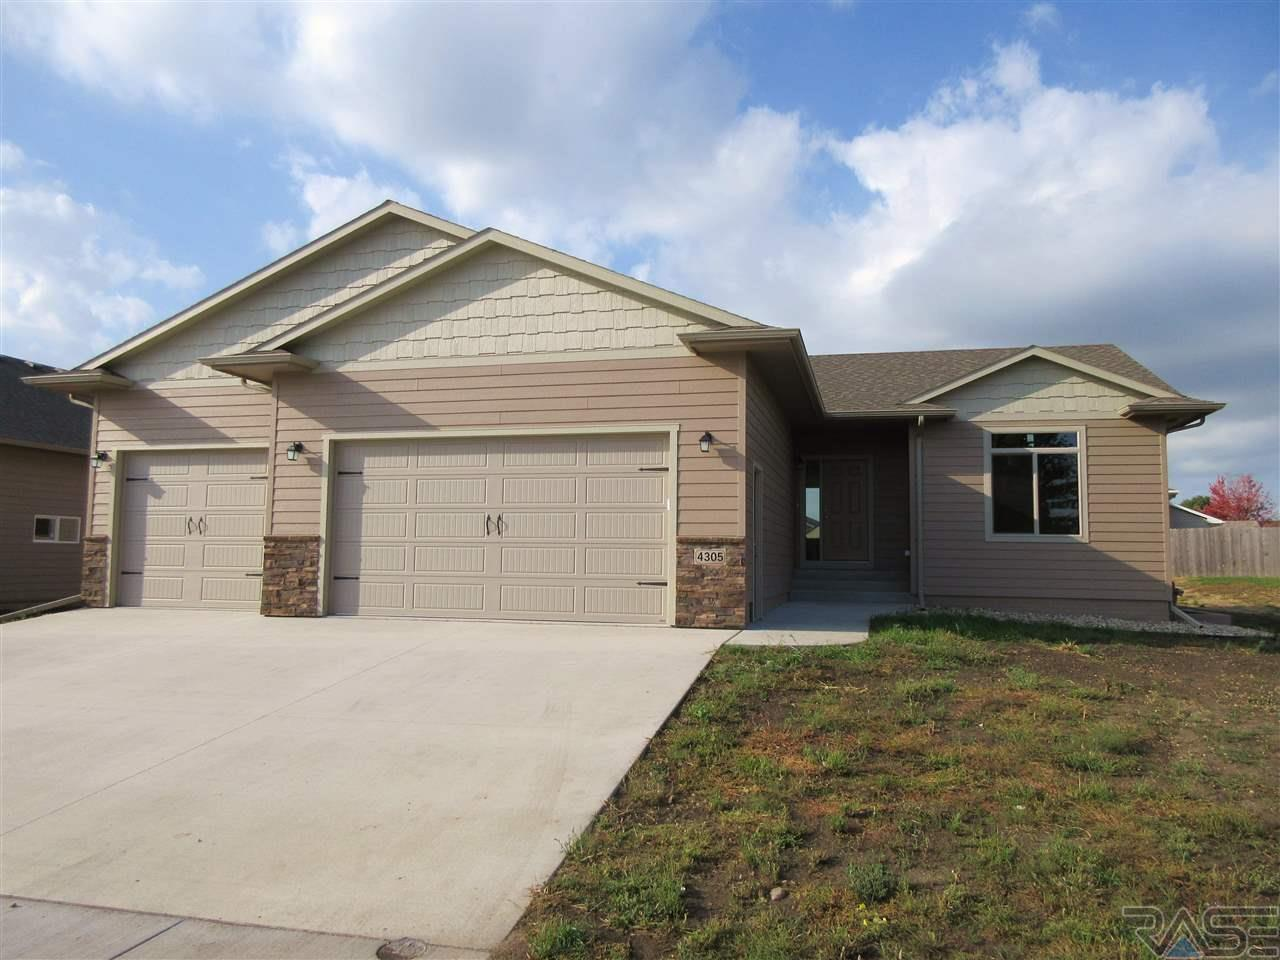 4305 Ohio Ave, Sioux Falls, SD 57107